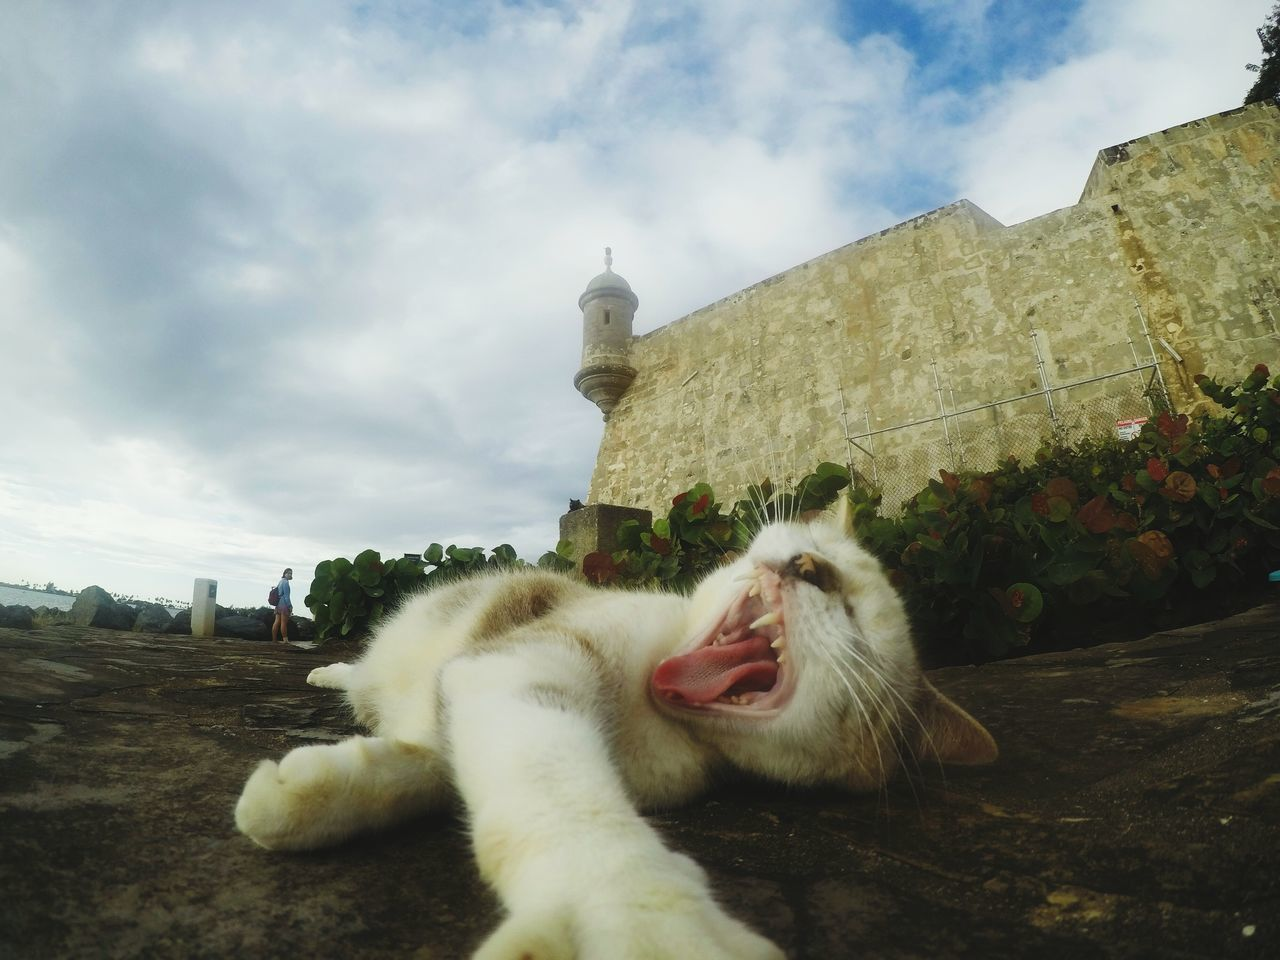 Cloud - Sky Sky Outdoors Architecture Cat Cats Selfiecat Selfie Cat Selfıe Selfie Animals Animal Animals Animal Wildlife Animal Photography Cat Eyes Cat Watching EyeEmNewHere